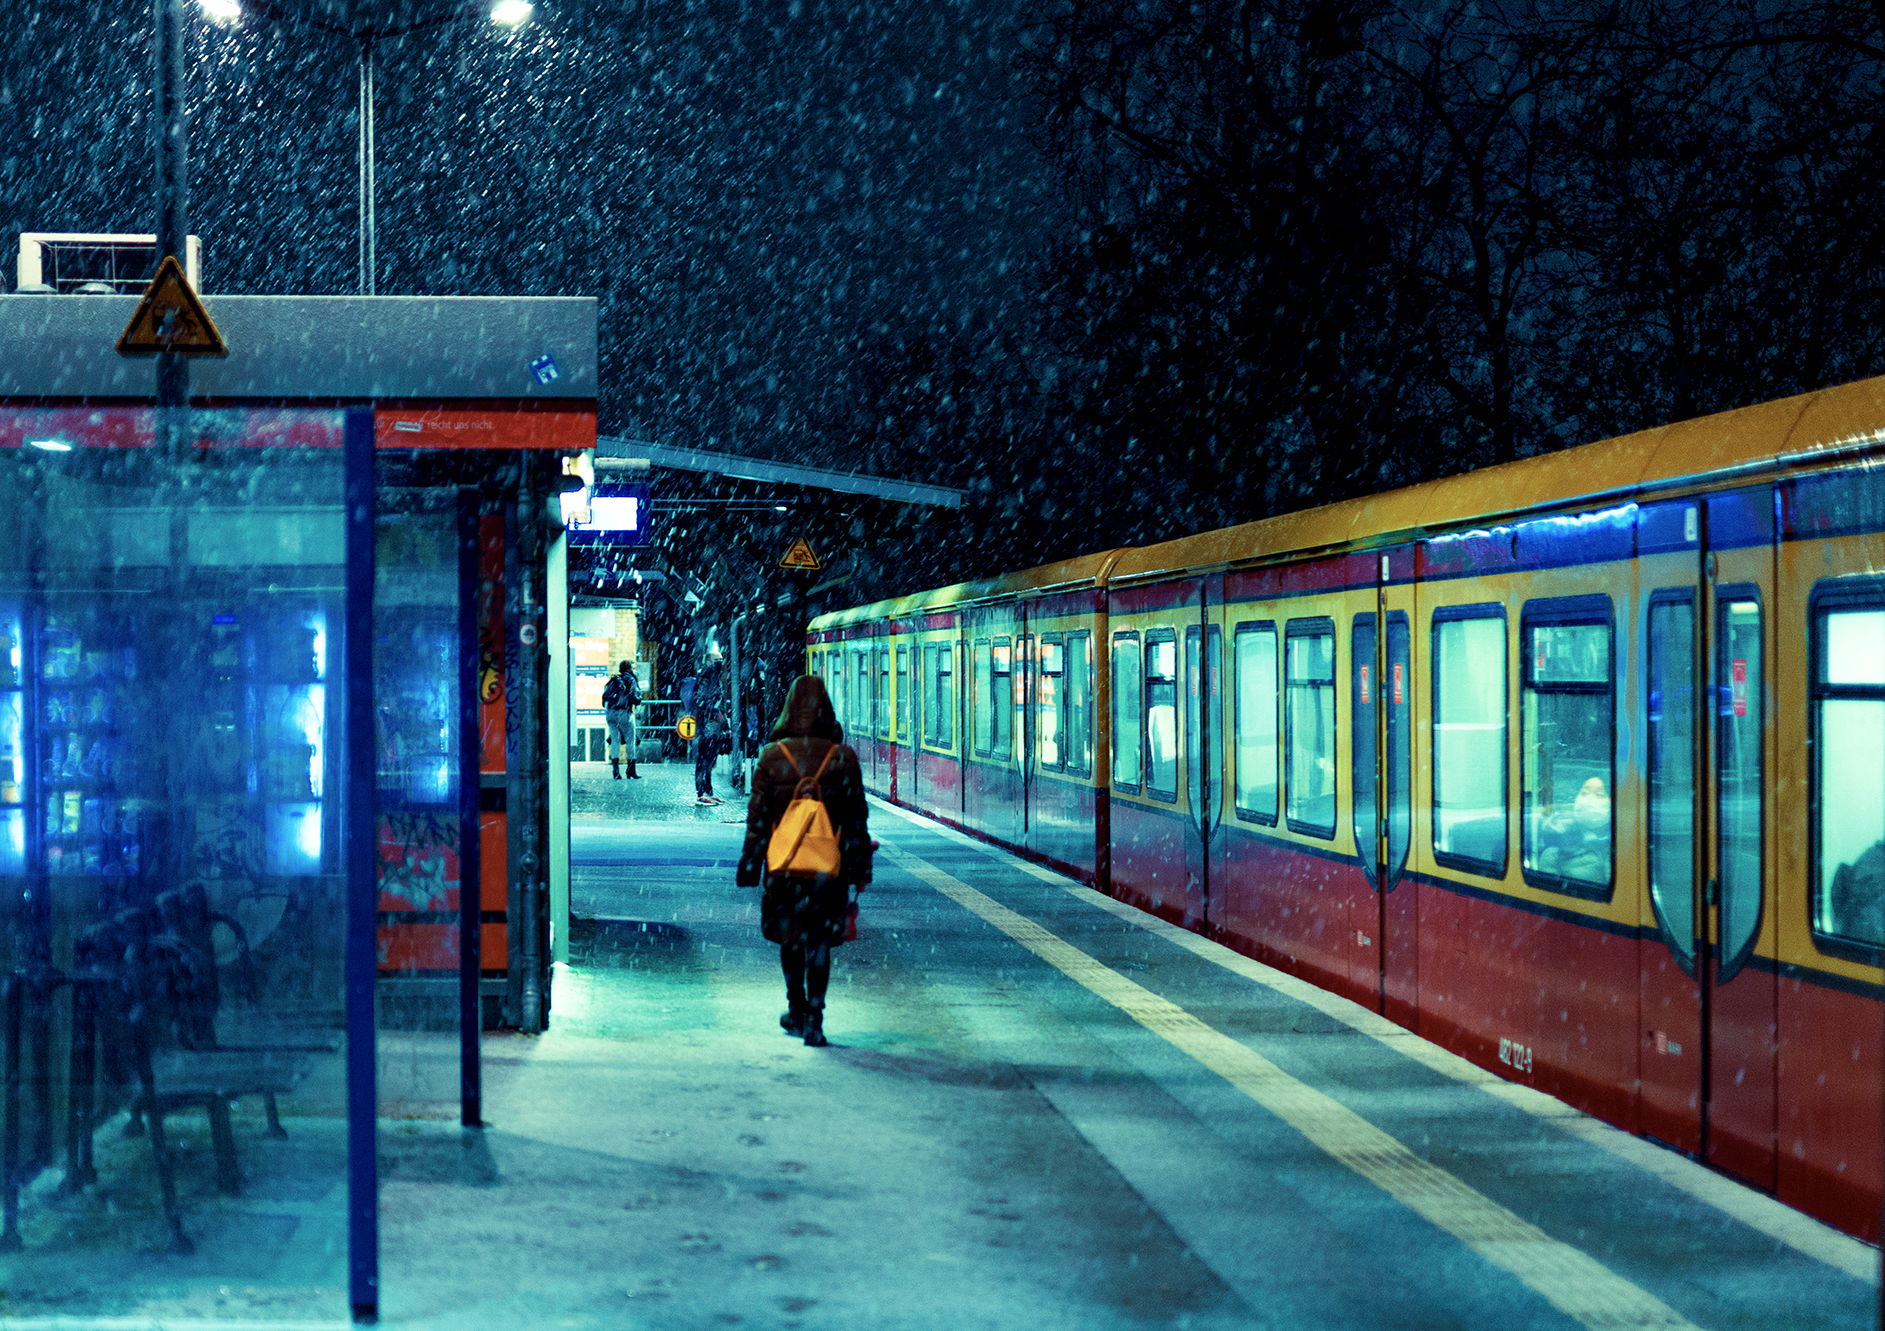 Snowy train Station in Berlin, 2021